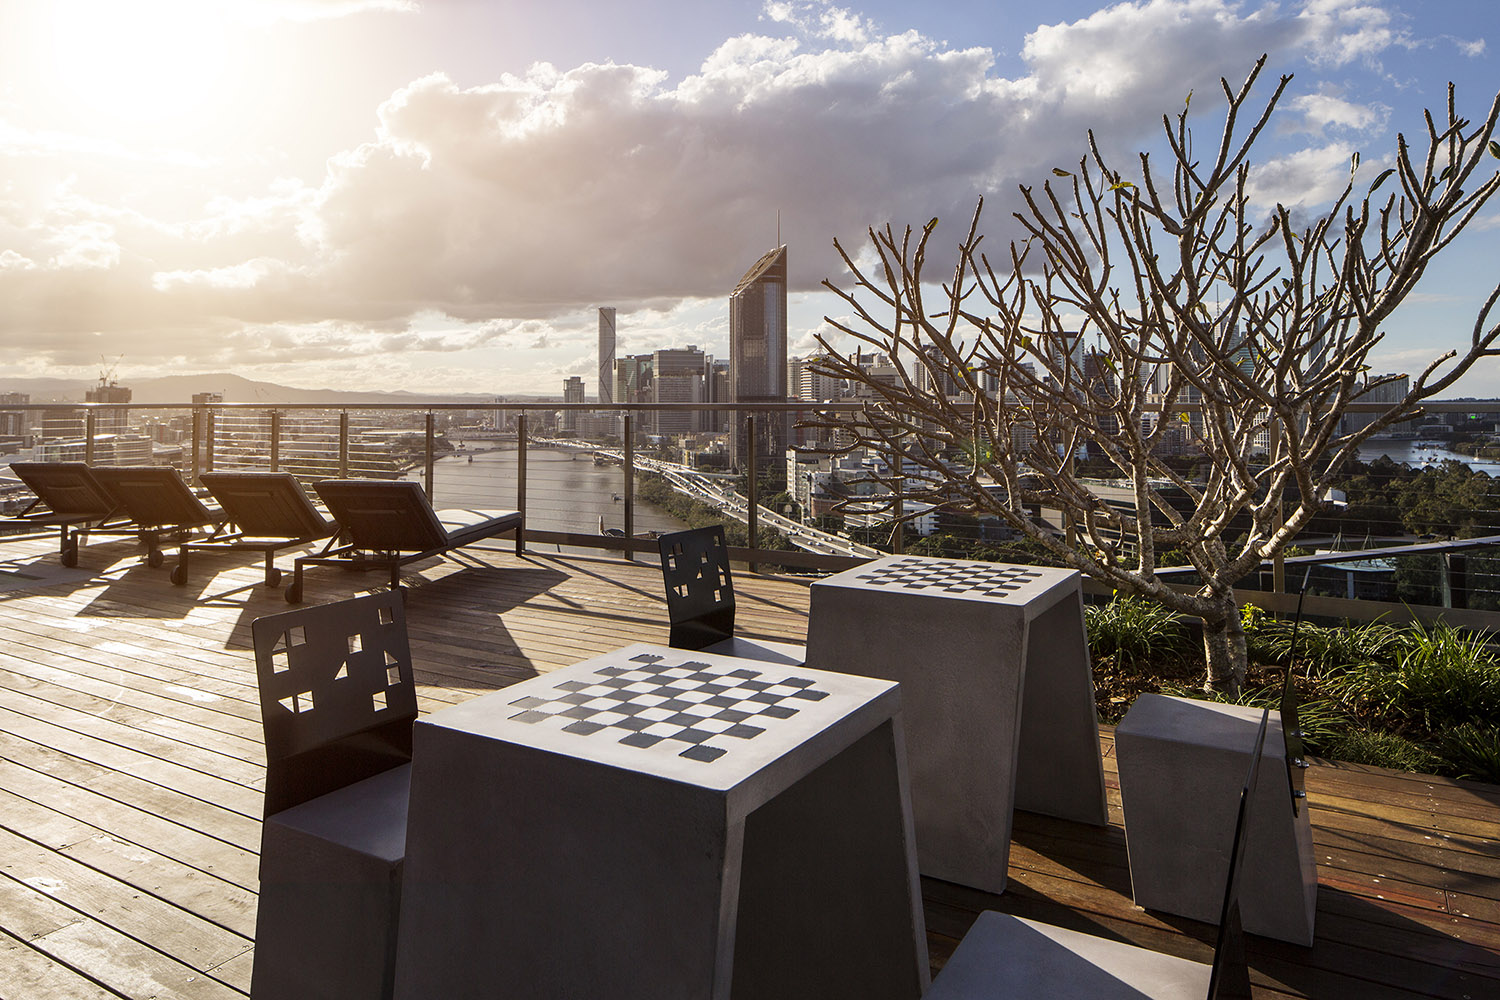 Boksi Concrete Stools with Concrete Chess Tables (Table design and photo by Aria Property Design)